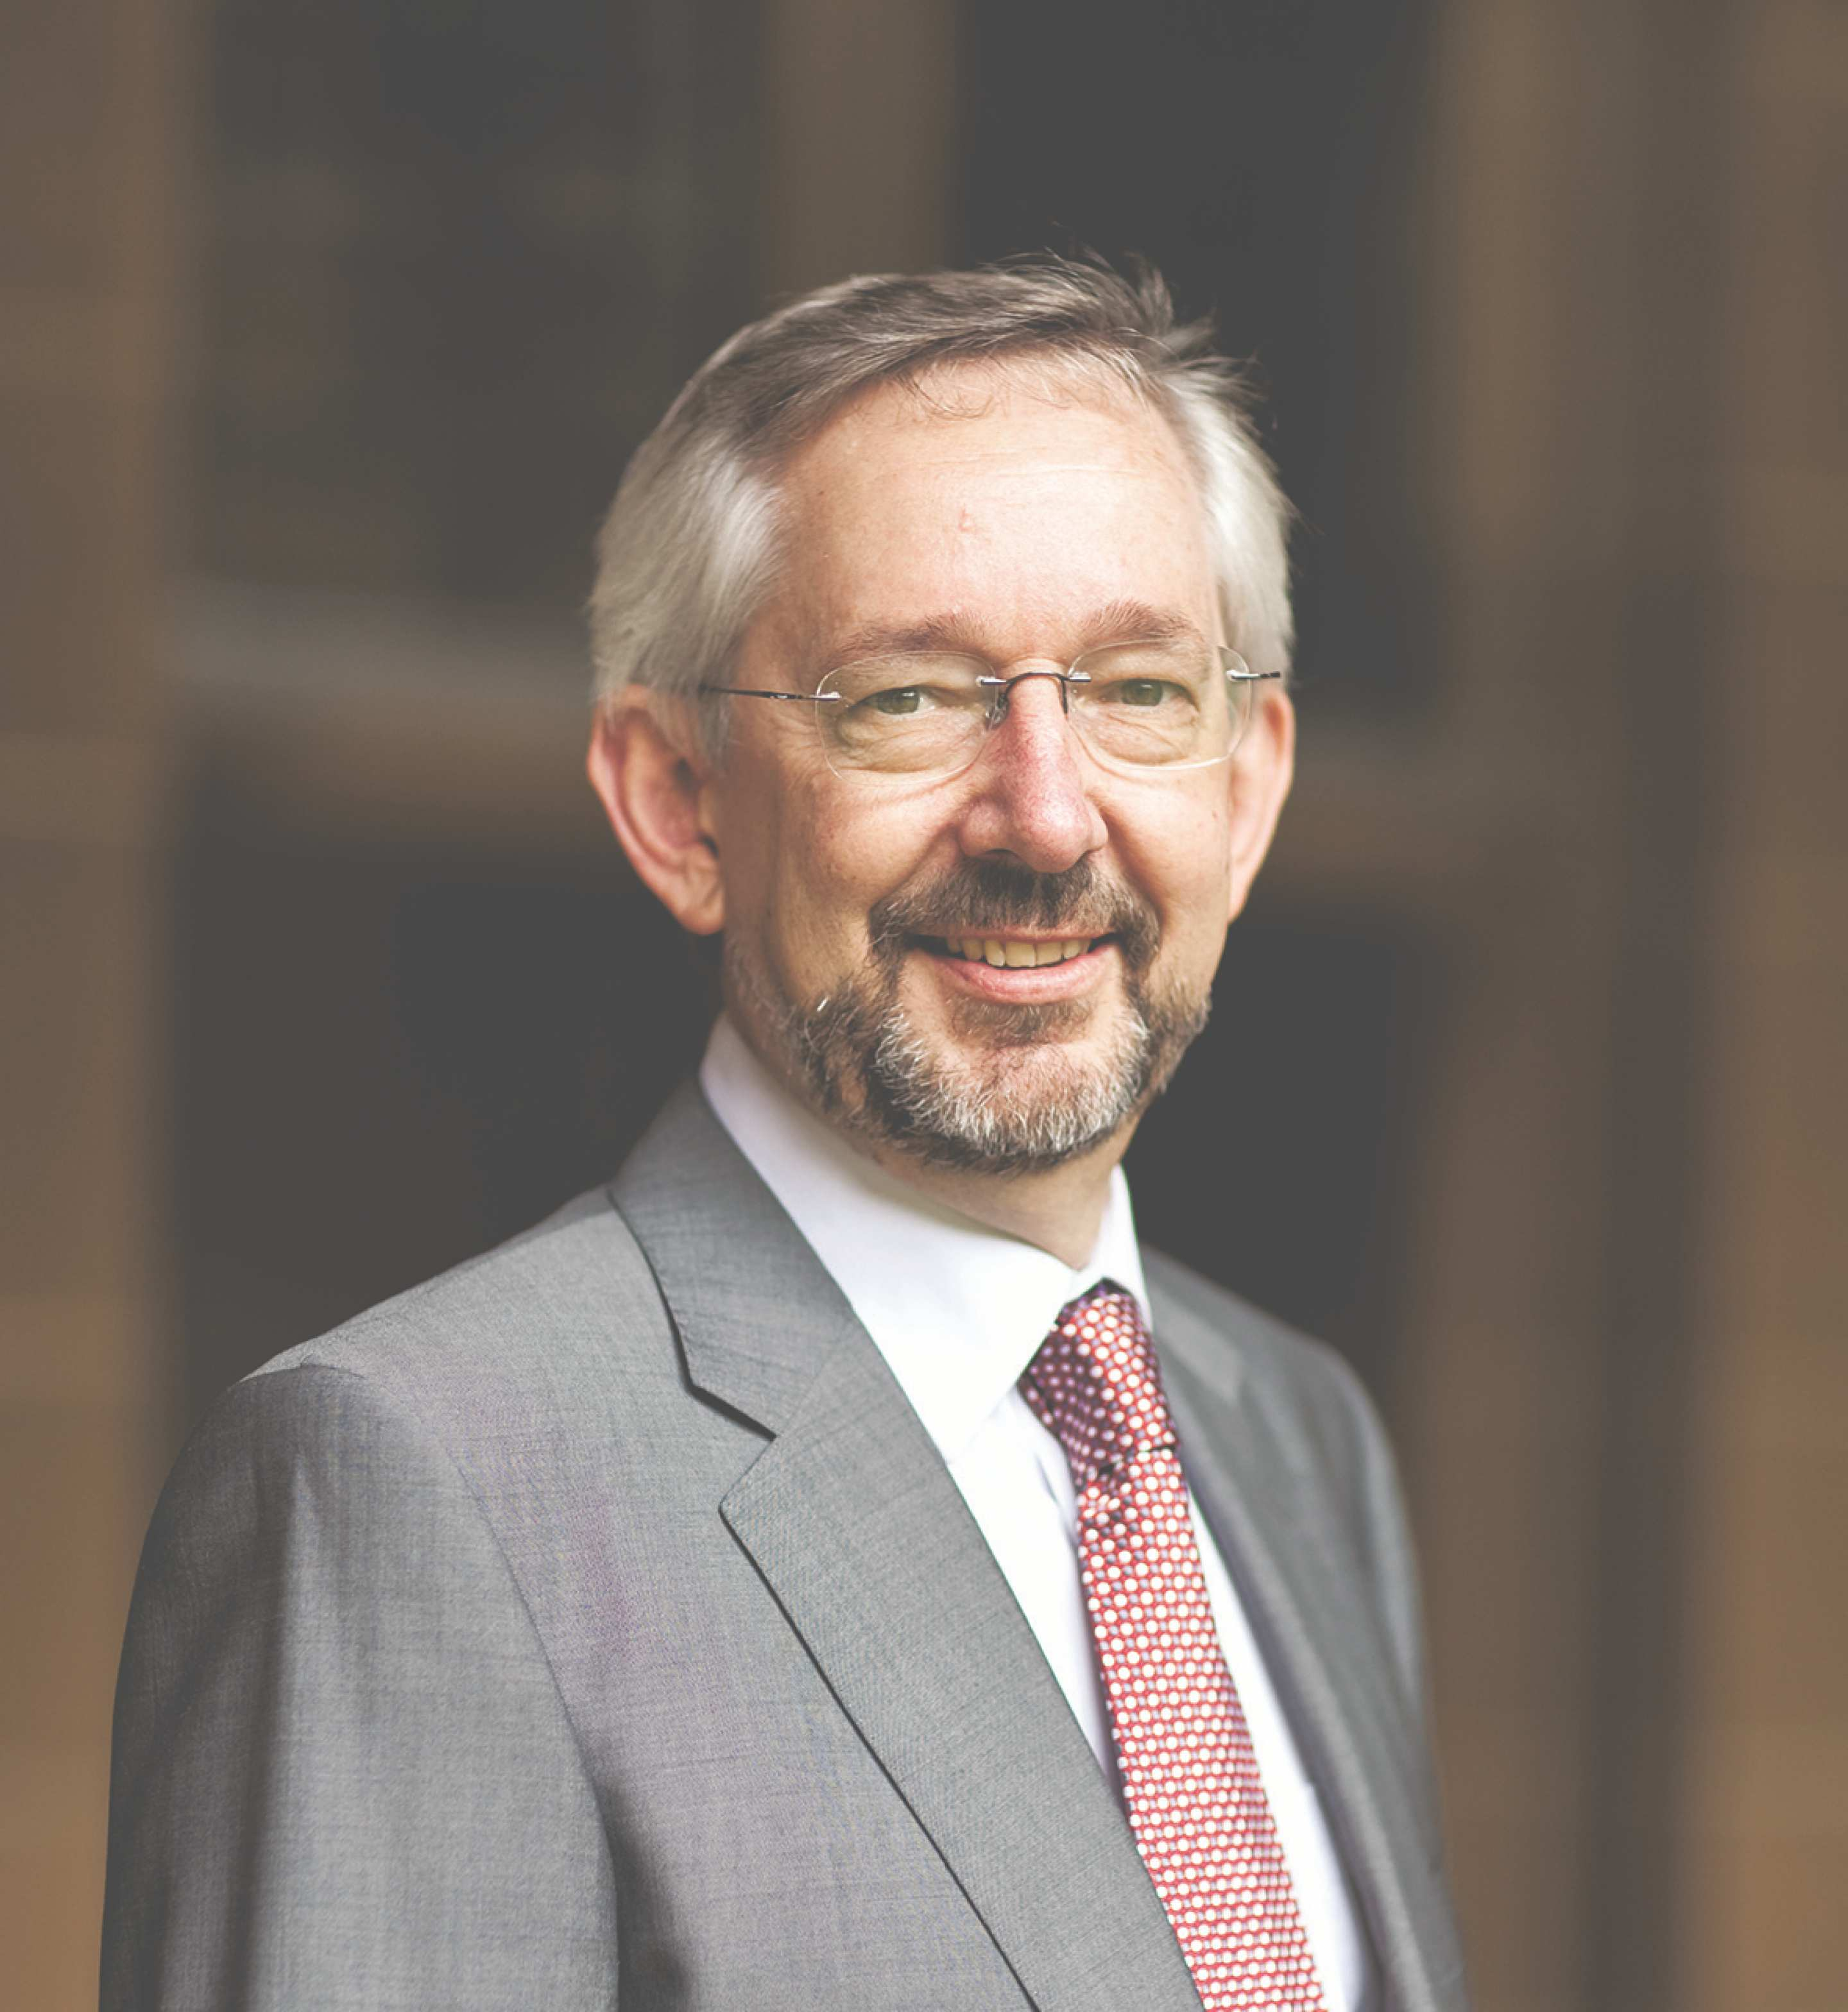 Professor Trevor Hambley